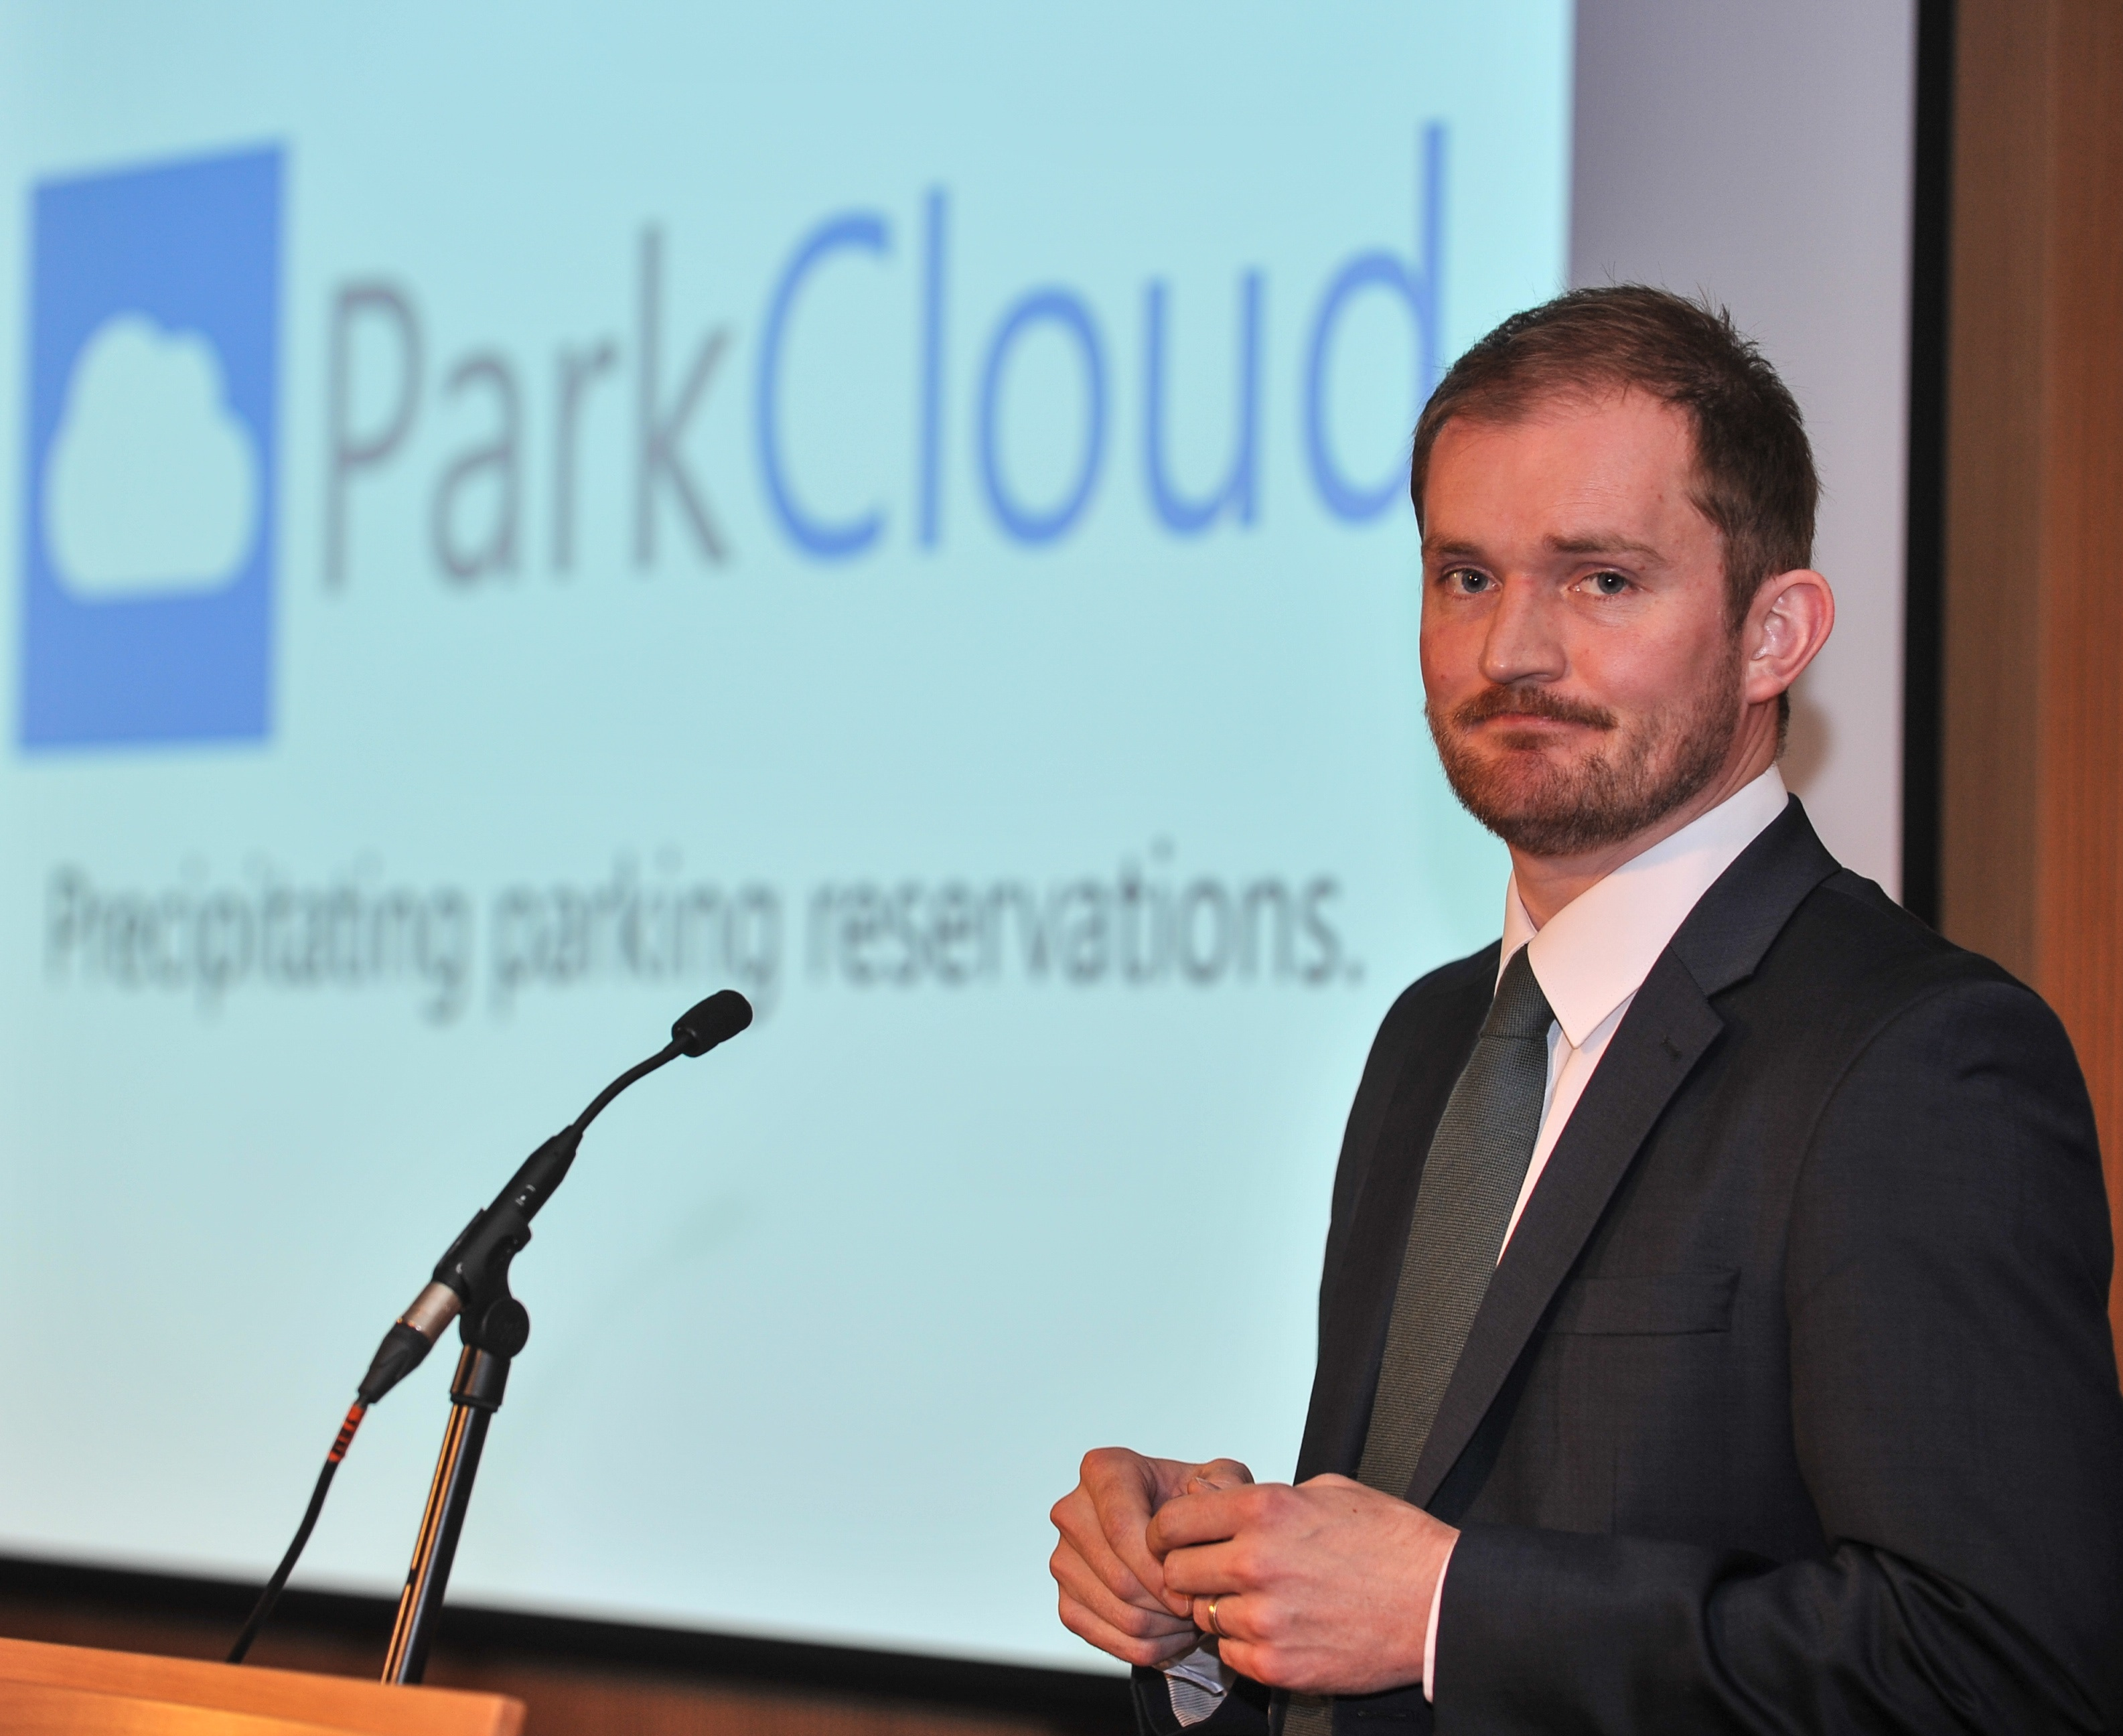 ParkCloud's Managing Director Mark Pegler, presenting at the recent EPA Congress, in Dublin.